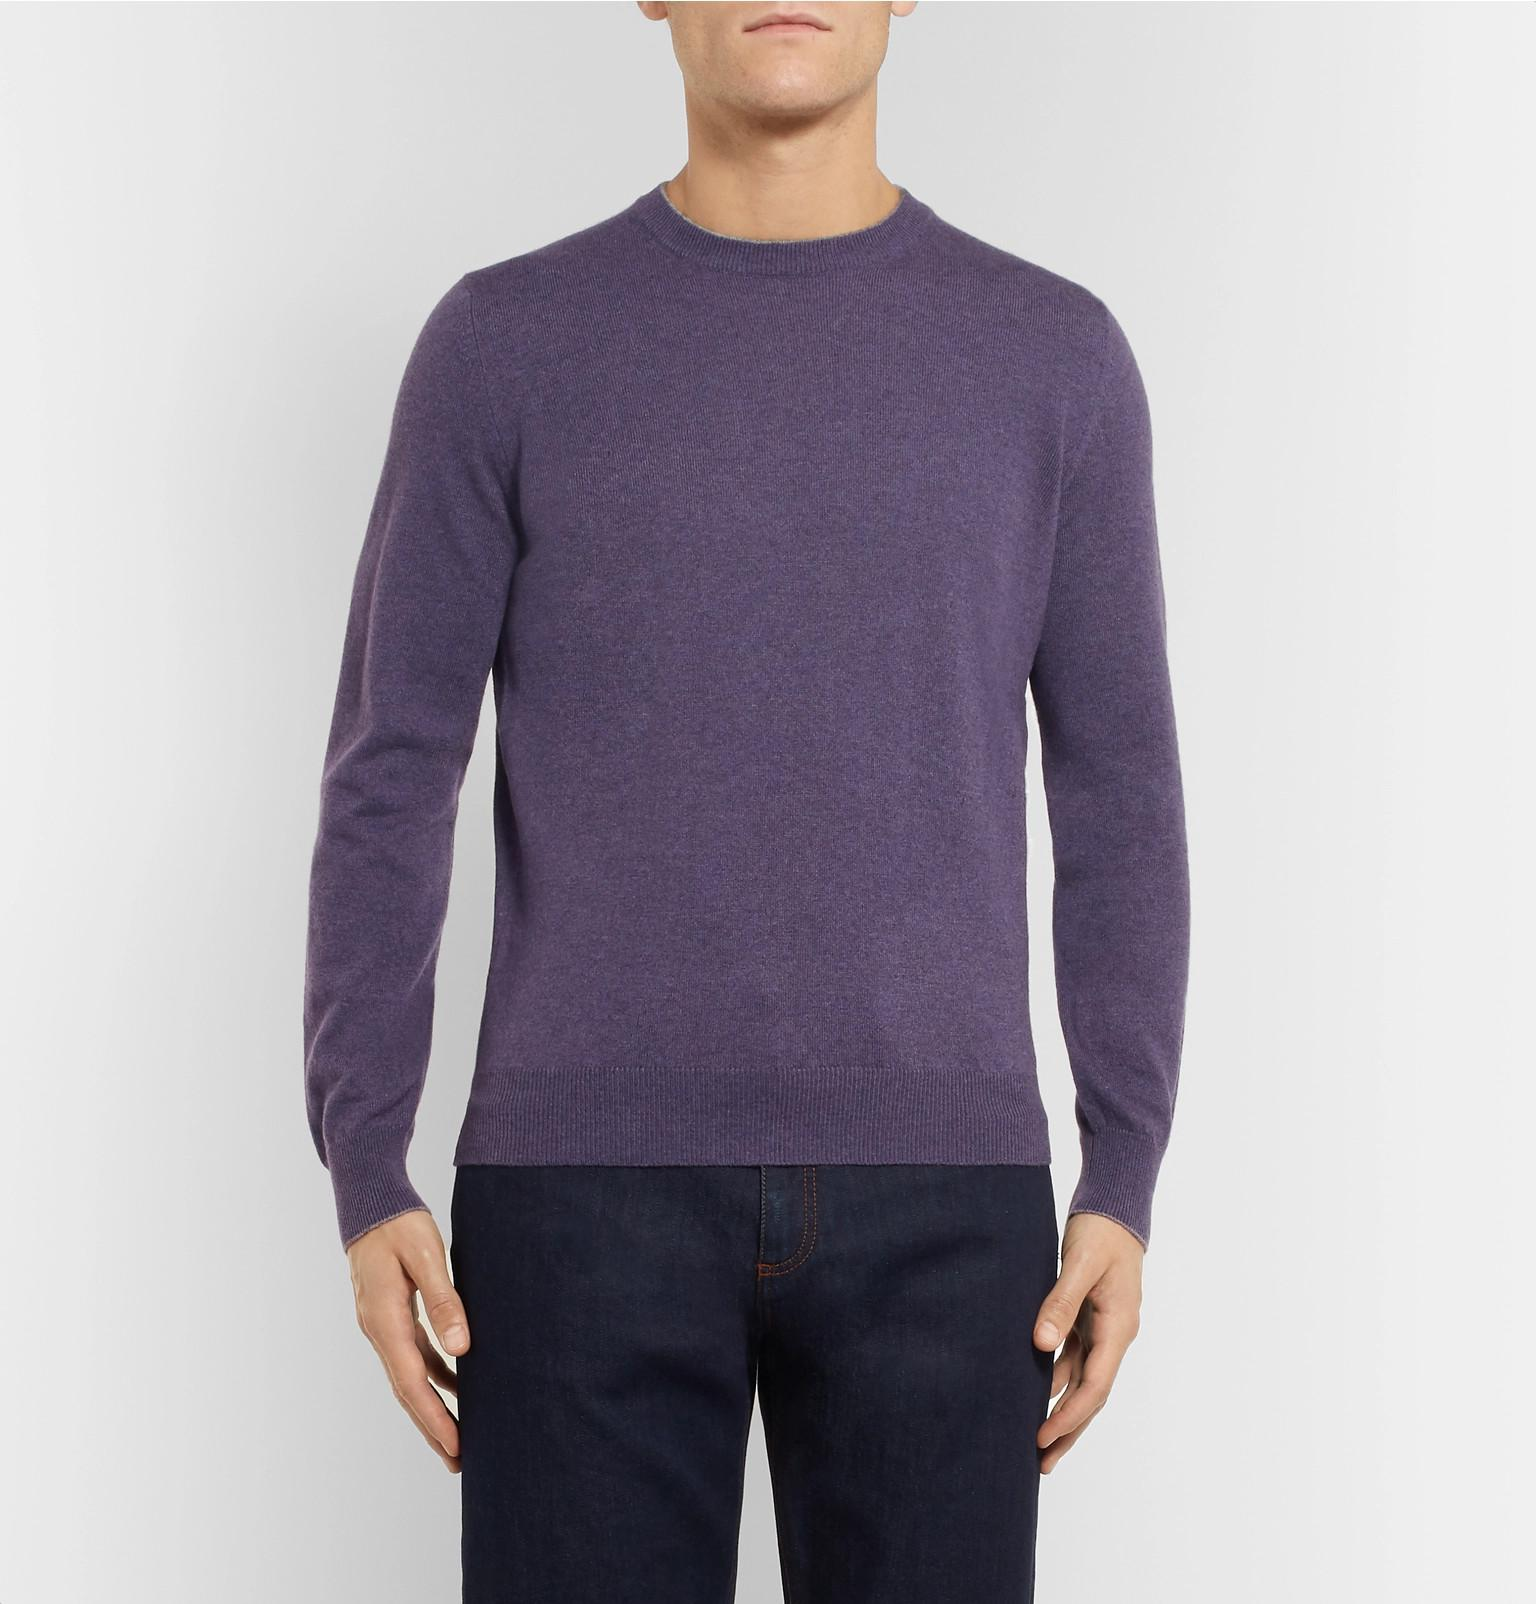 Purple Sweater View Cucinelli Tipped Fullscreen For Cashmere Contrast Lyst Men Brunello q7npwW5z5